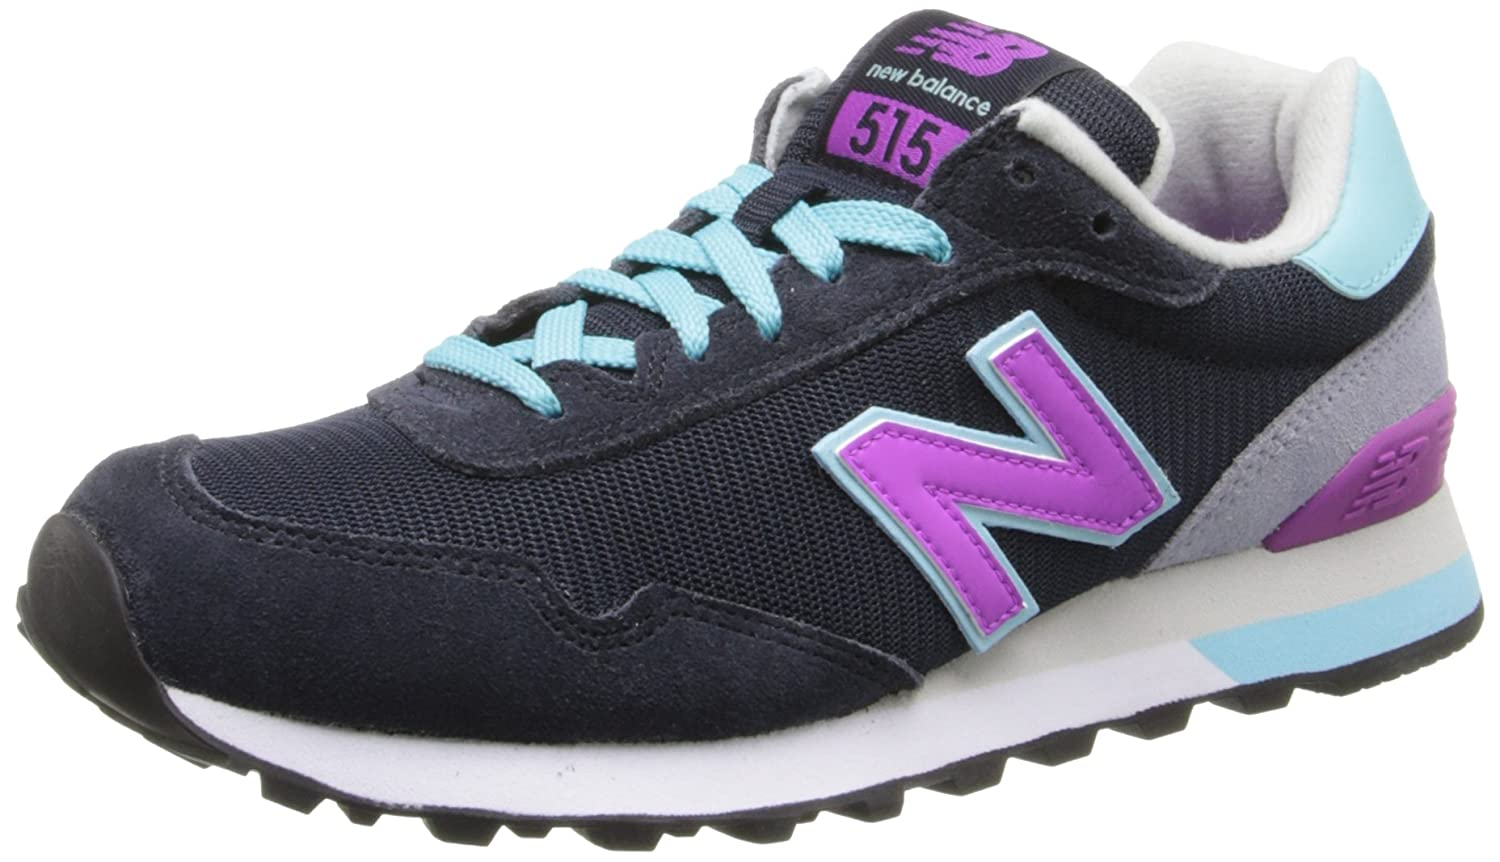 new balance for women